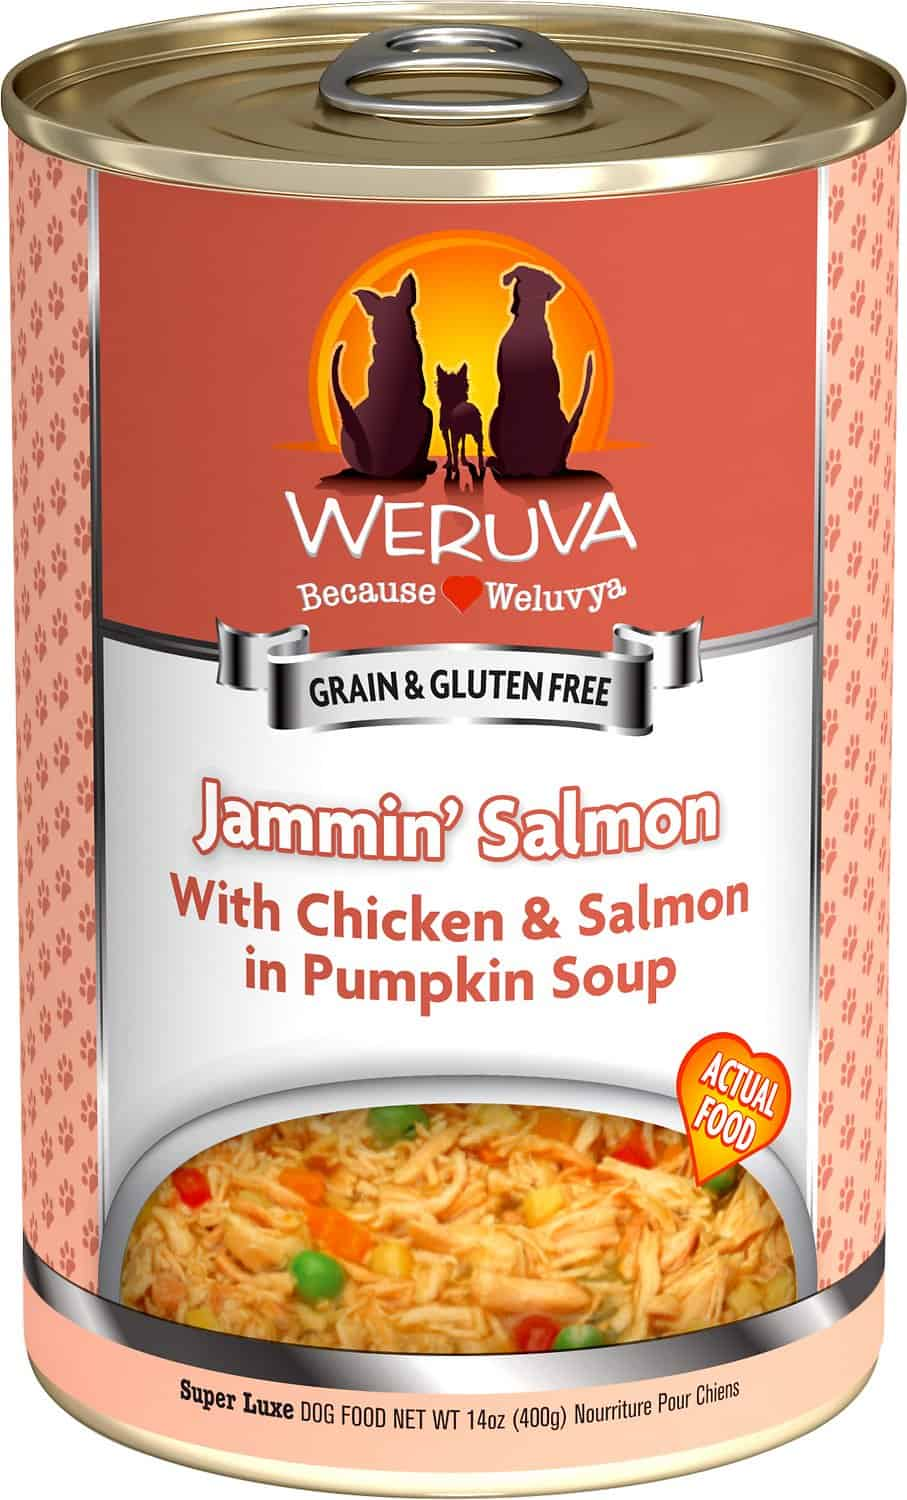 Weruva Dog Food Review 2020: Treat Your Pet To A Lil' Luxury! 15